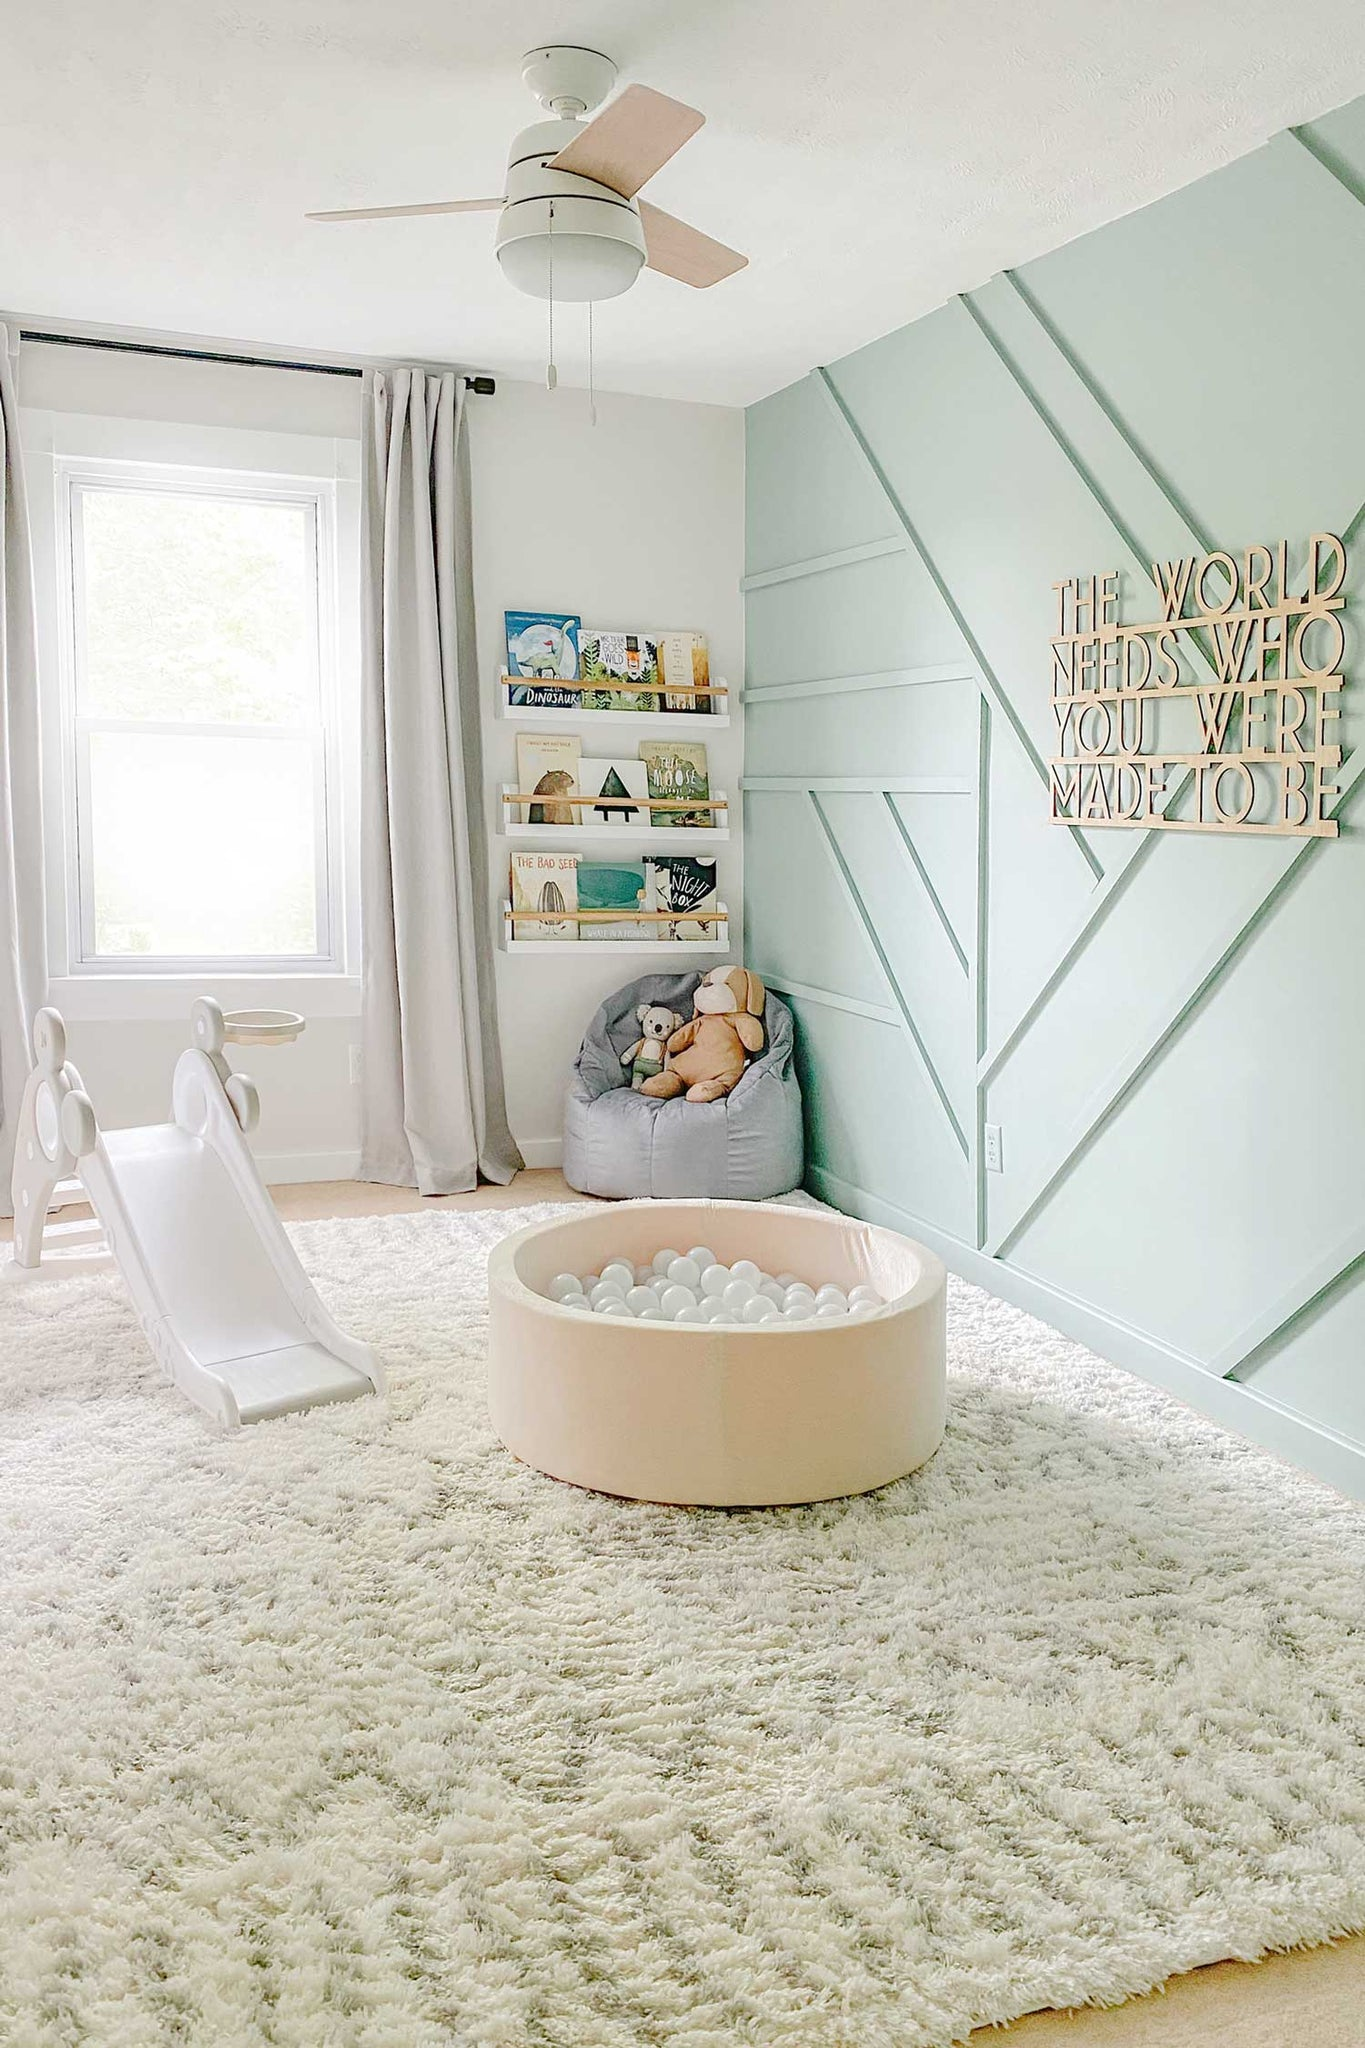 DIY accent wall interior featuring removable wallpaper